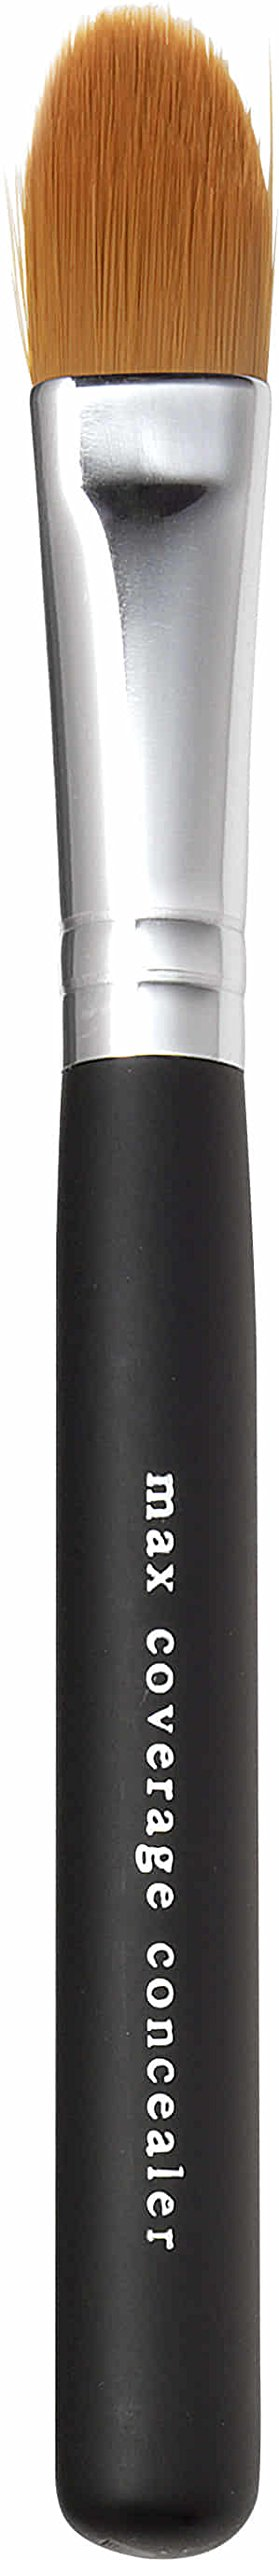 Bare Escentuals Maximum Coverage Concealer Brush